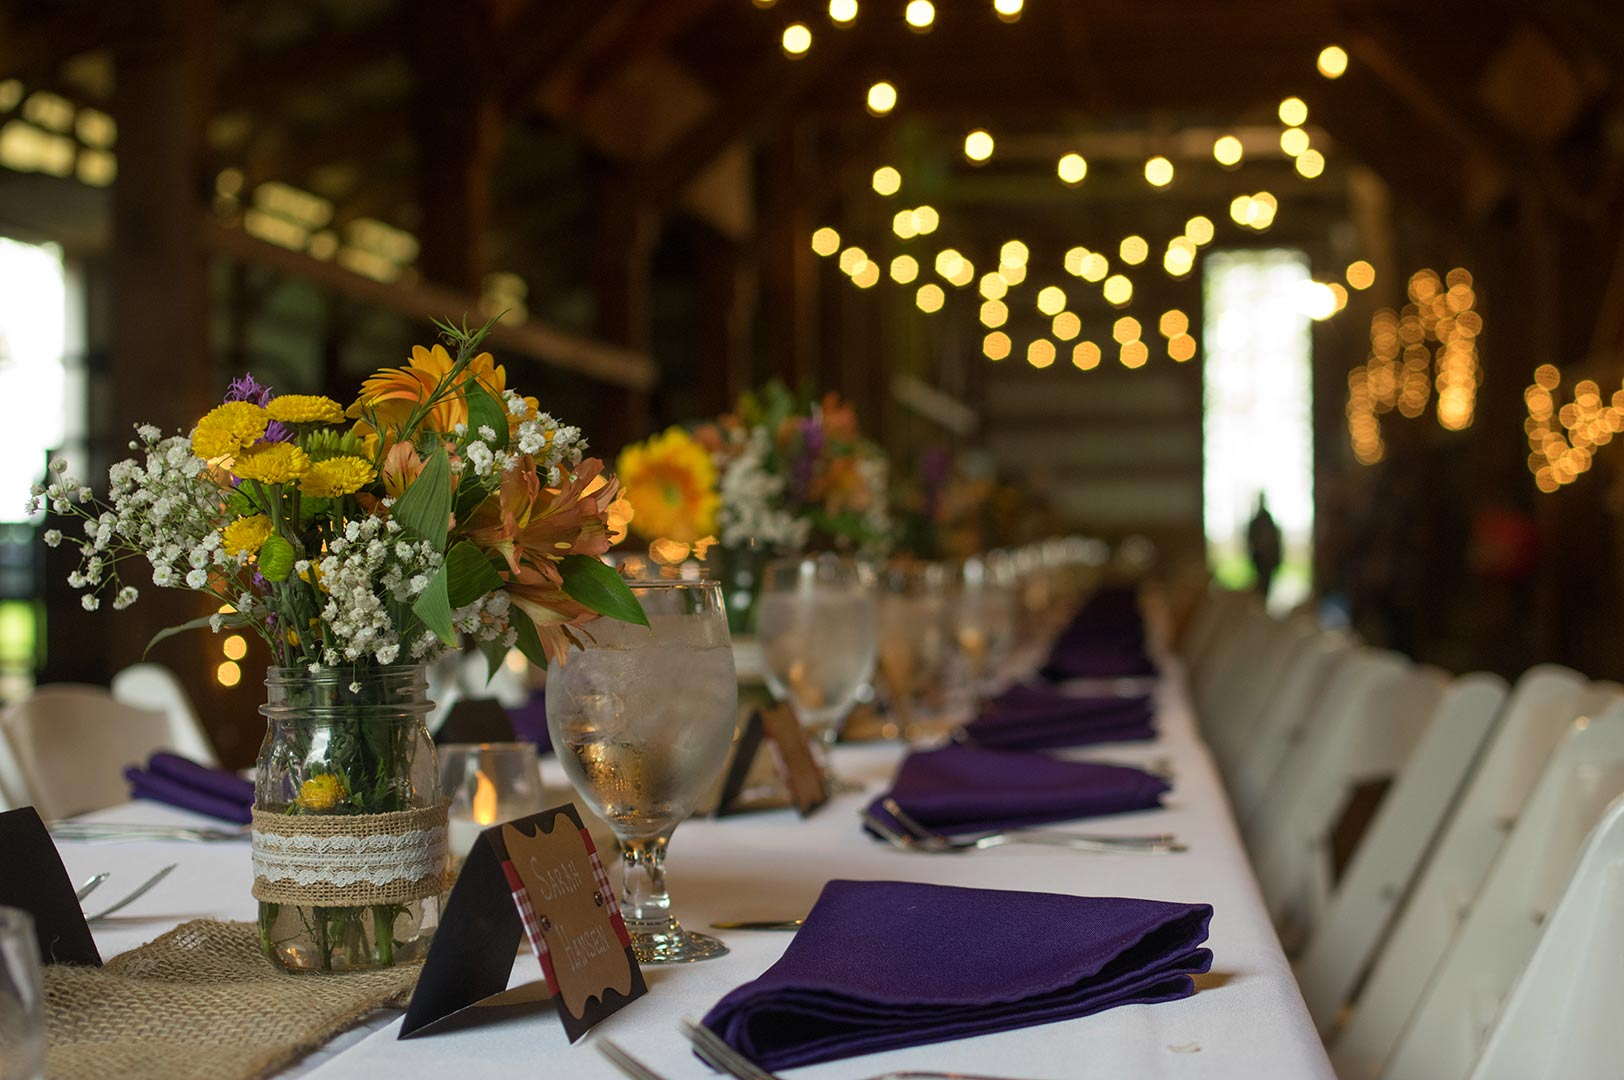 Four-Courses-with-the-Horses-table setting